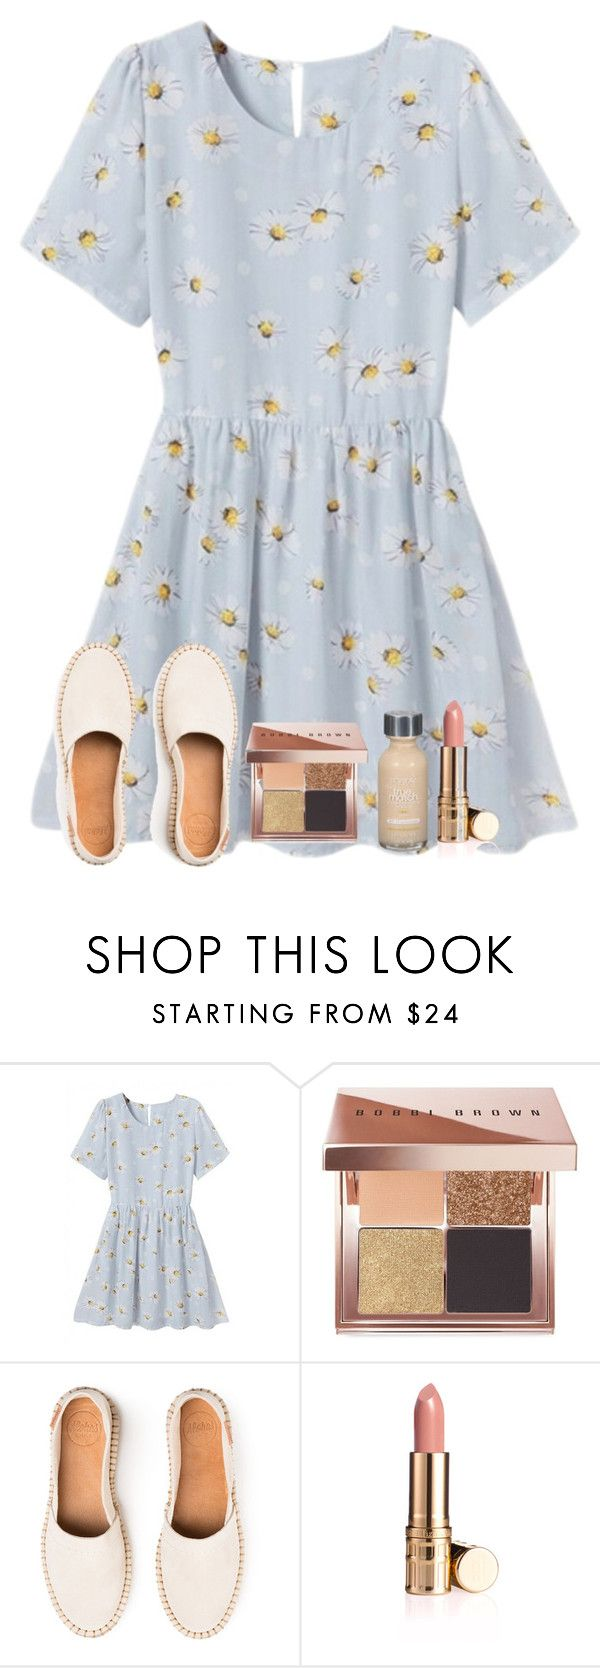 """Summer picnic outfit"" by elisabethturner ❤ liked on Polyvore featuring WithChic, Bobbi Brown Cosmetics, Elizabeth Arden and L'Oréal Paris"